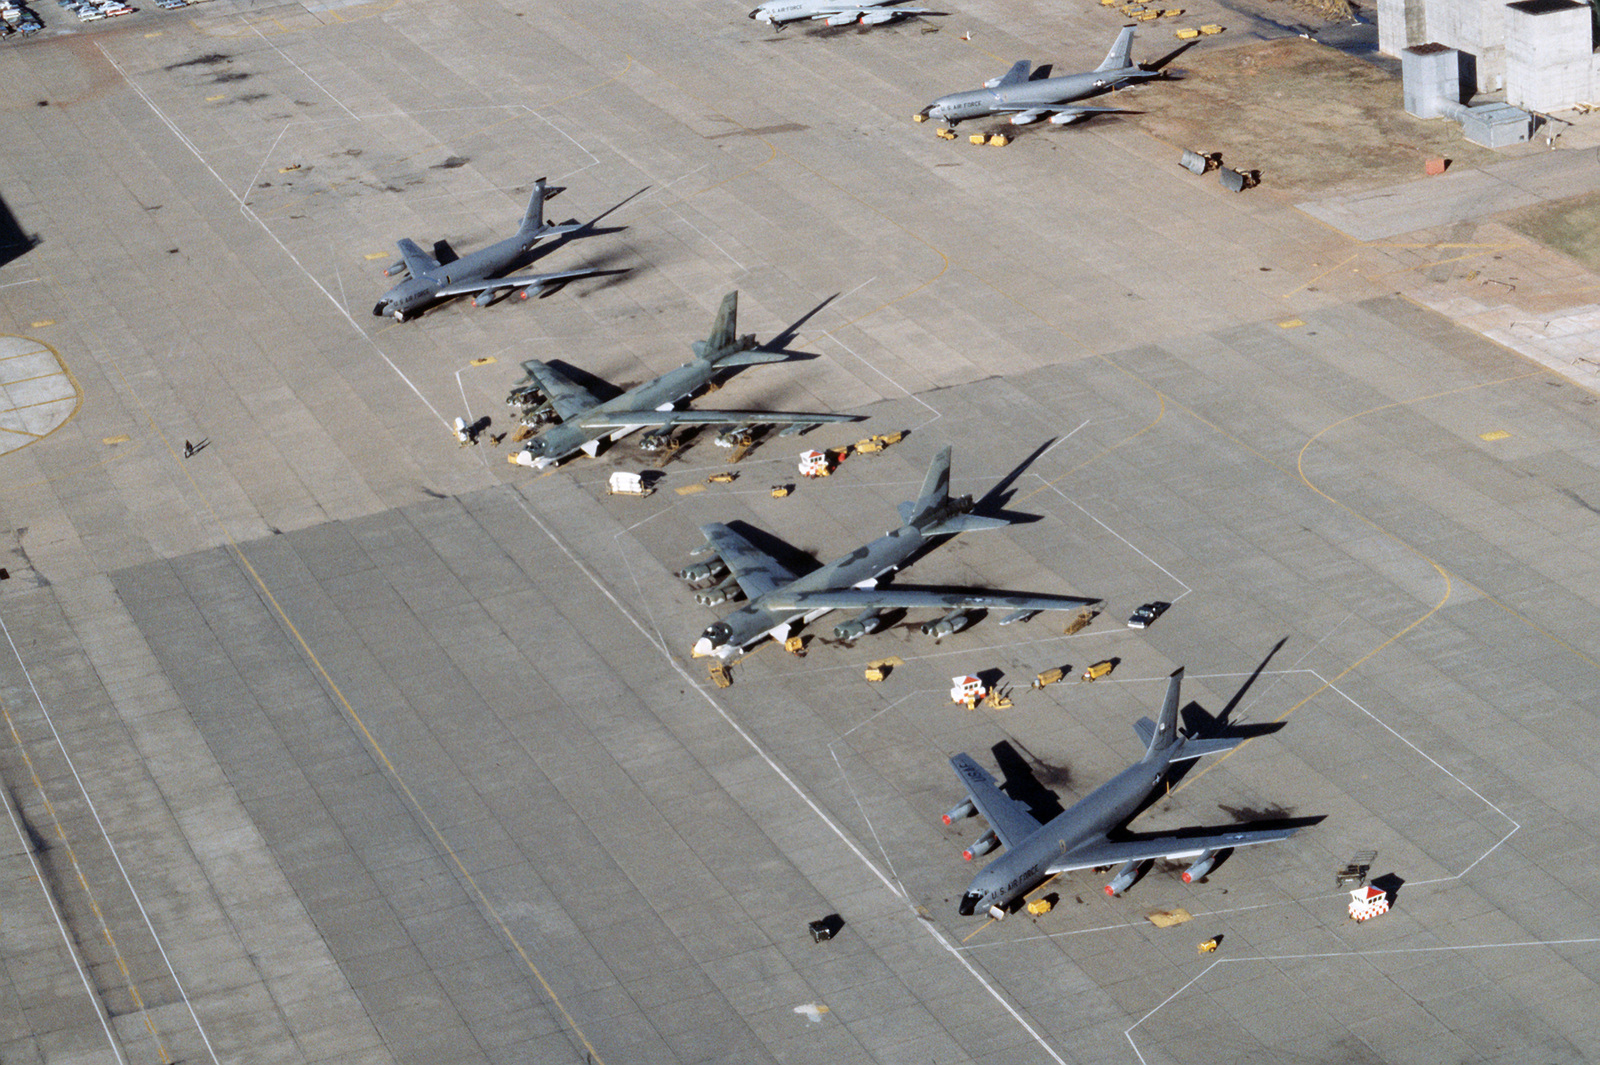 An elevated view of the flight line with two B-52 Stratofortress aircraft flanked by two KC-135 Stratotanker aircraft